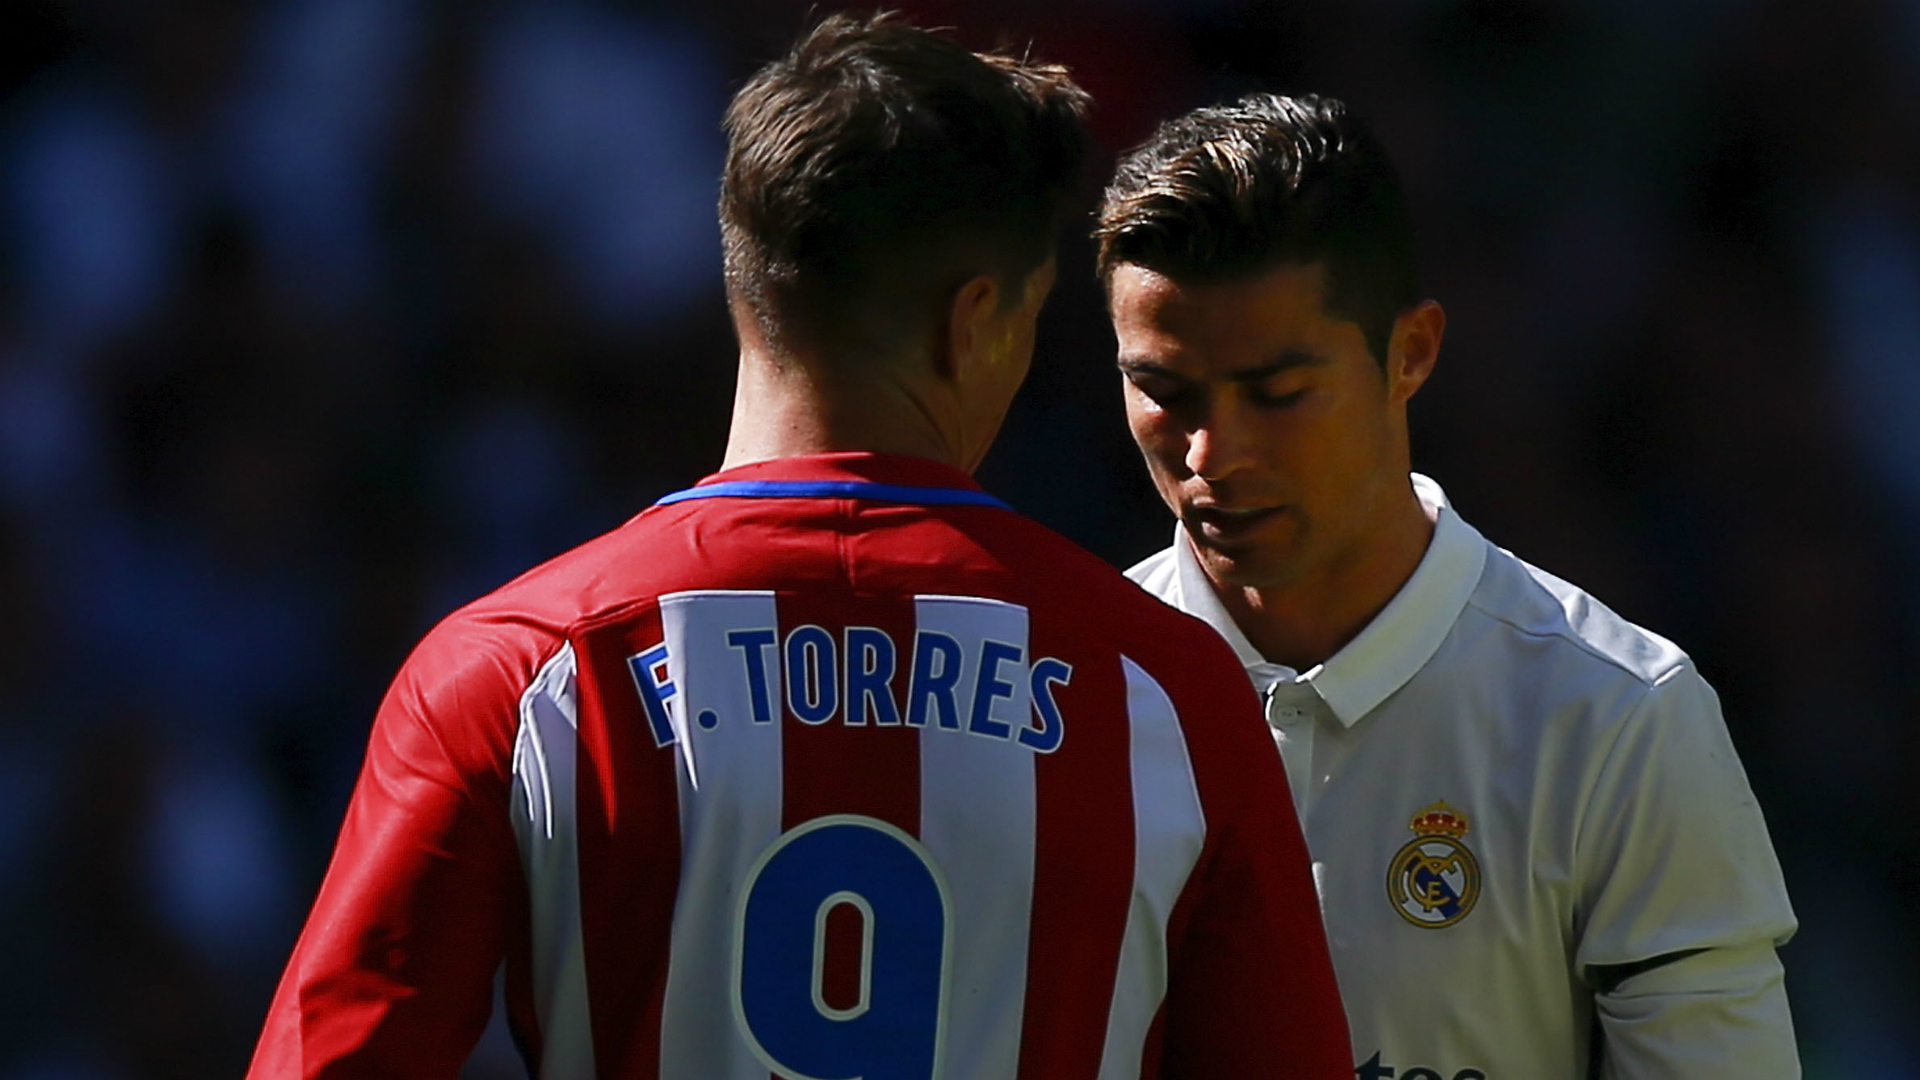 Atletico fans would rather lose in semis than face Real Madrid final - Schuster